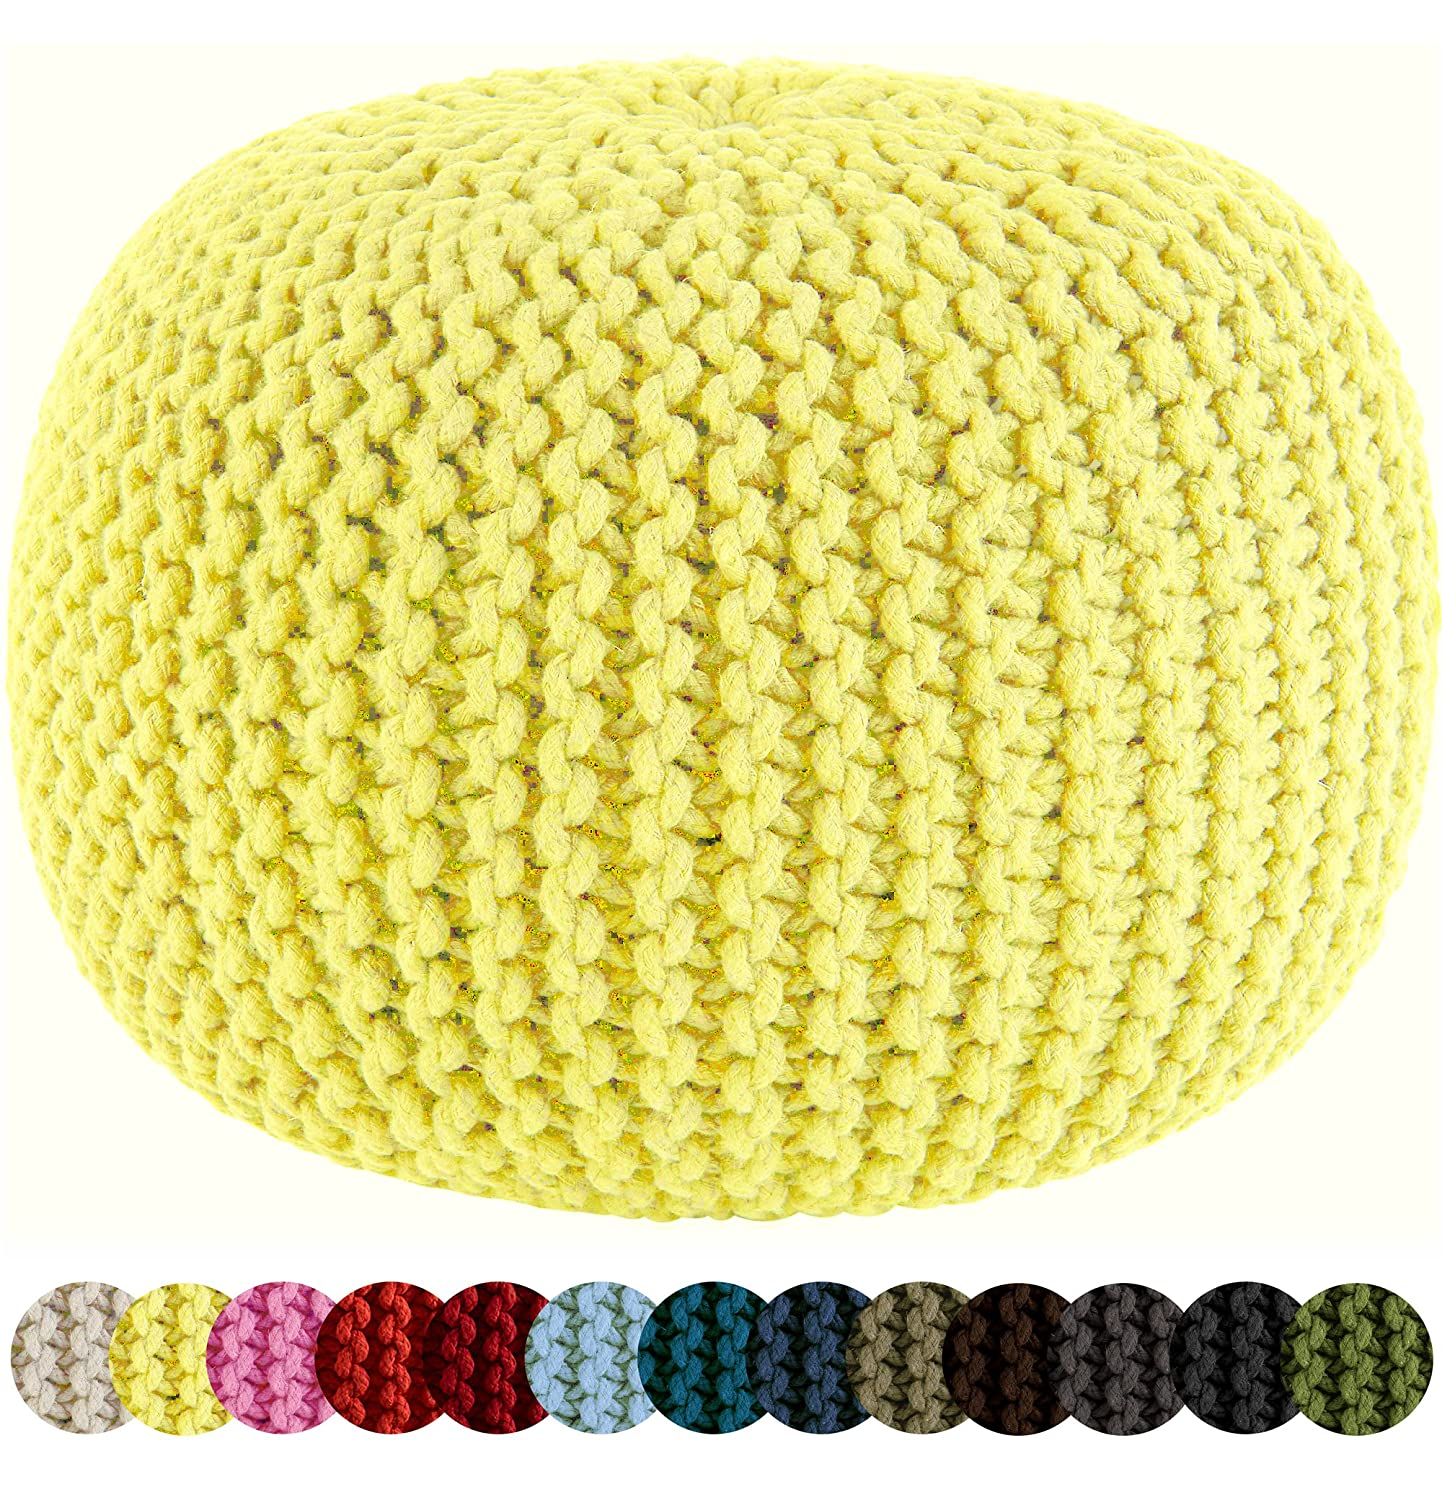 Cotton Craft - Hand Knitted Cable Style Dori Pouf - Yellow - Floor Ottoman